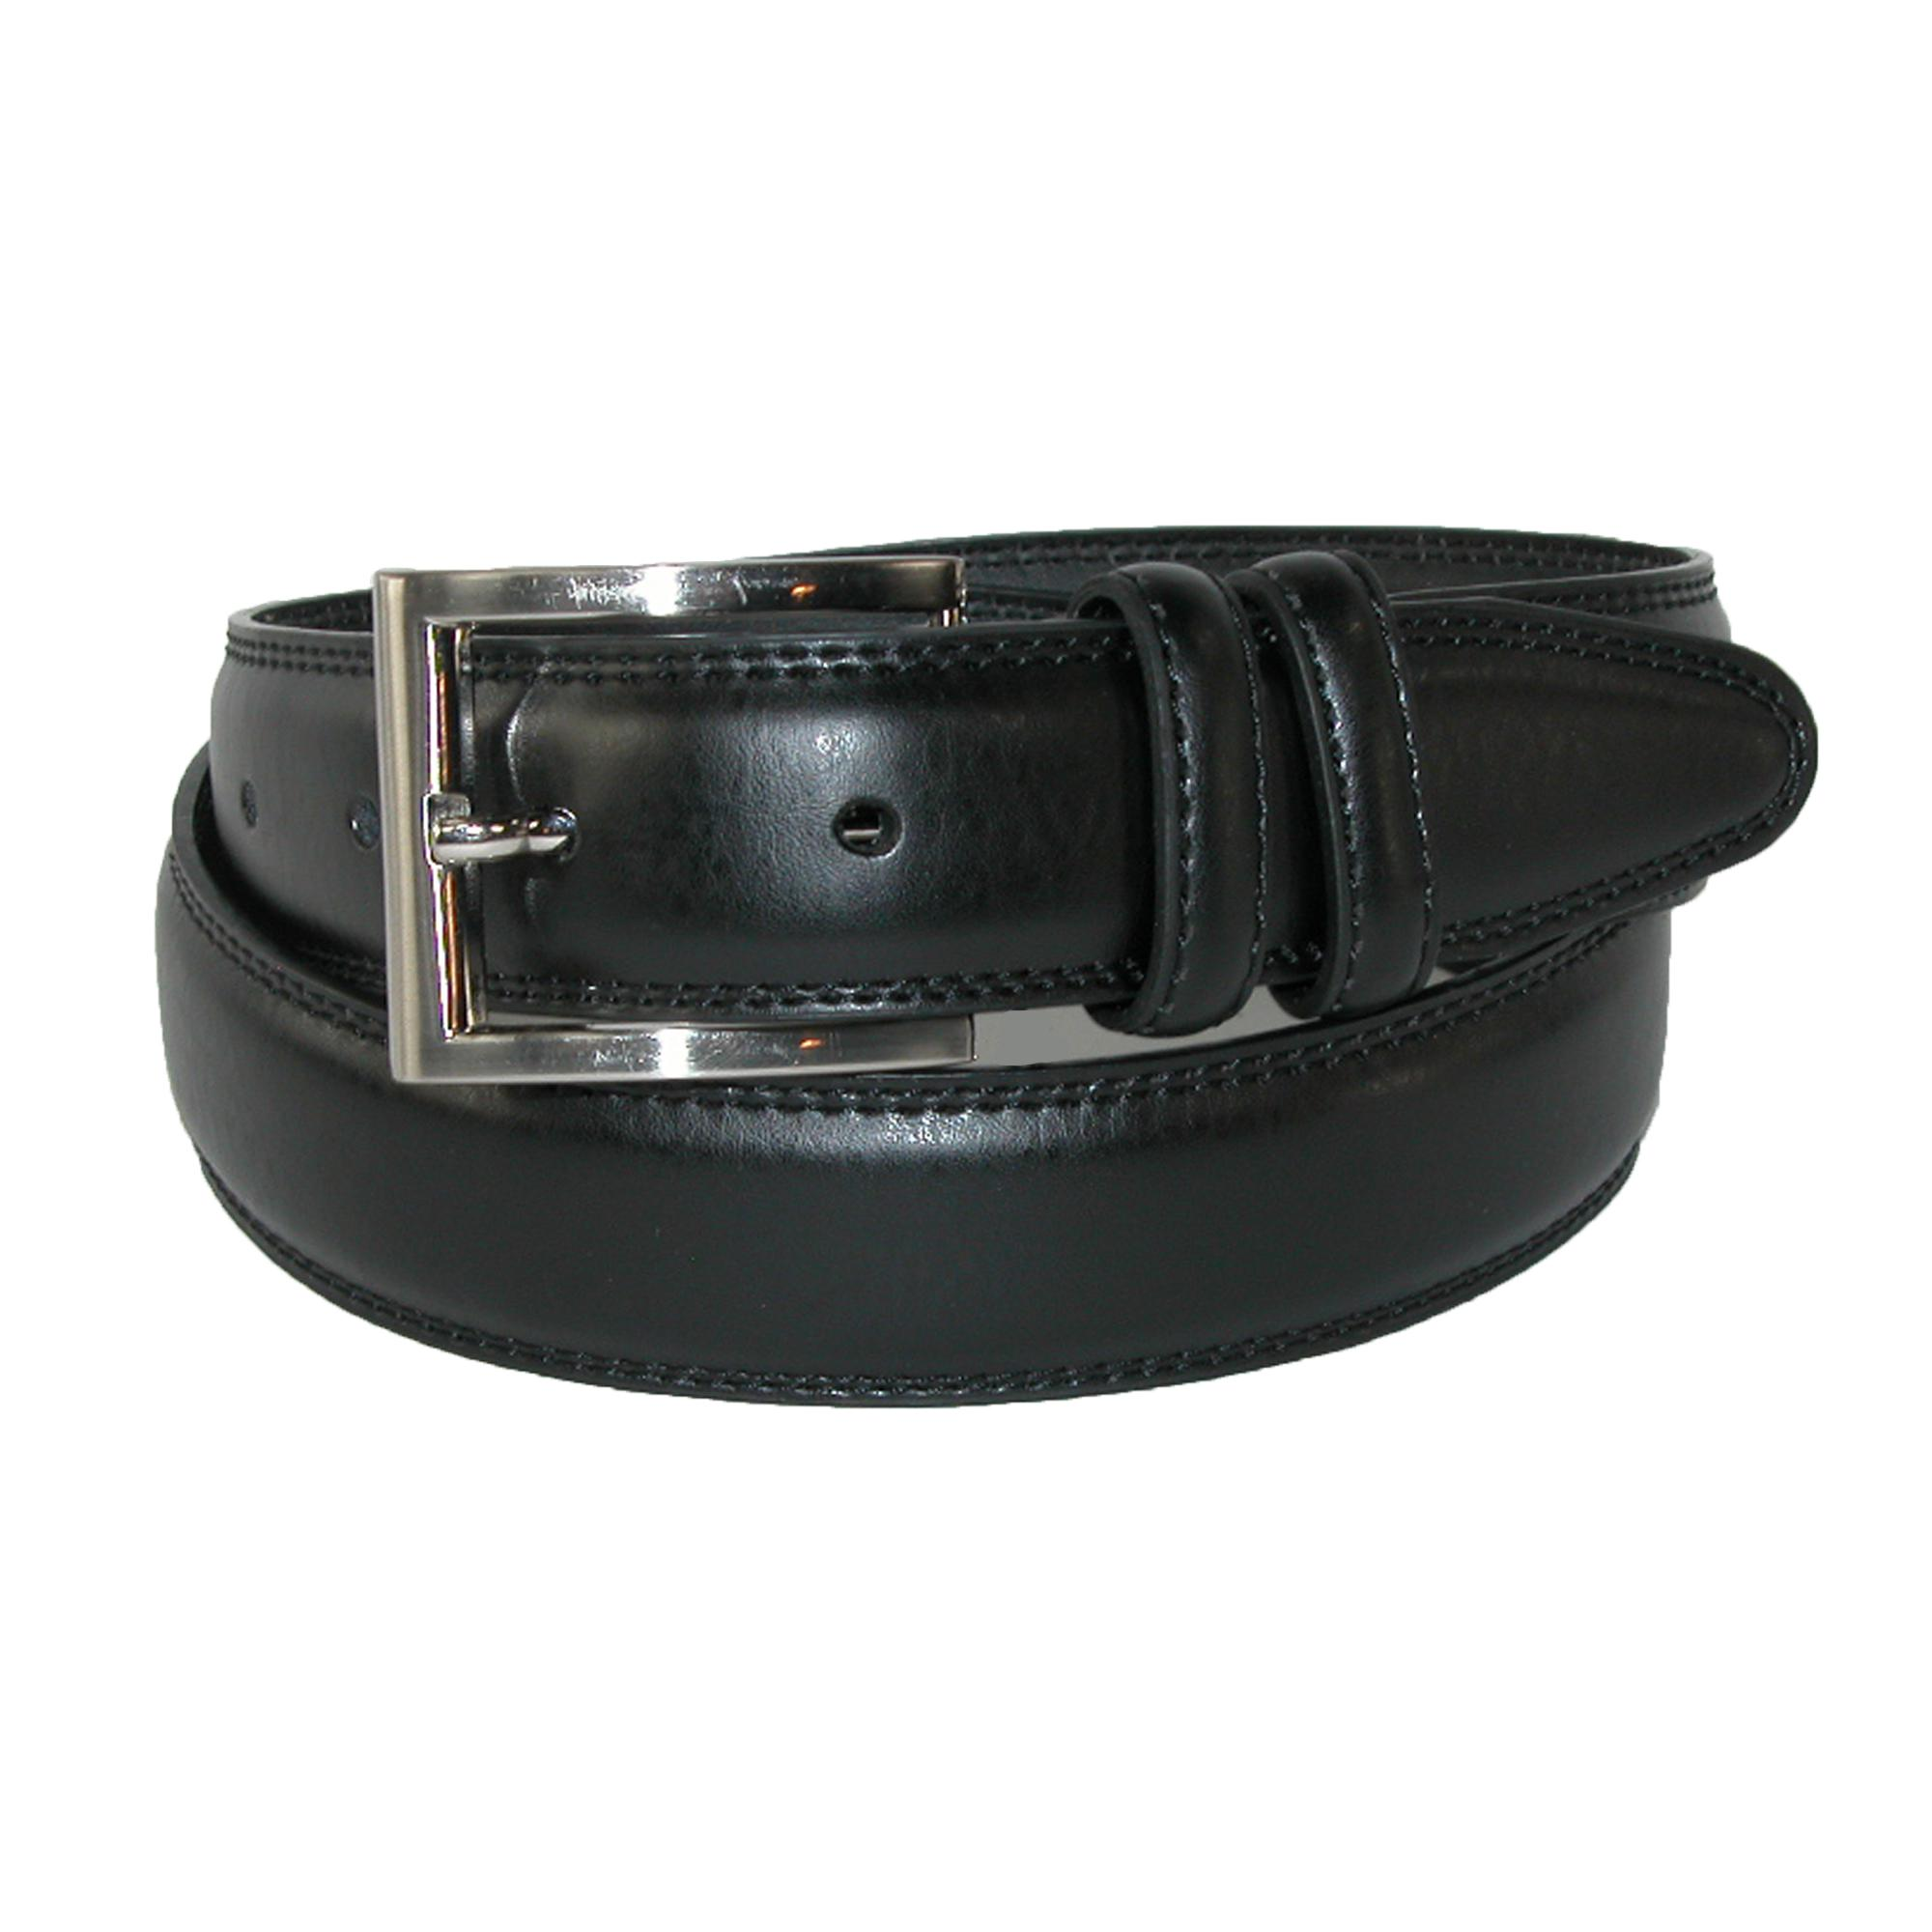 Aquarius Mens Leather 32mm Double Keeper Padded Belt With Satin Buckle